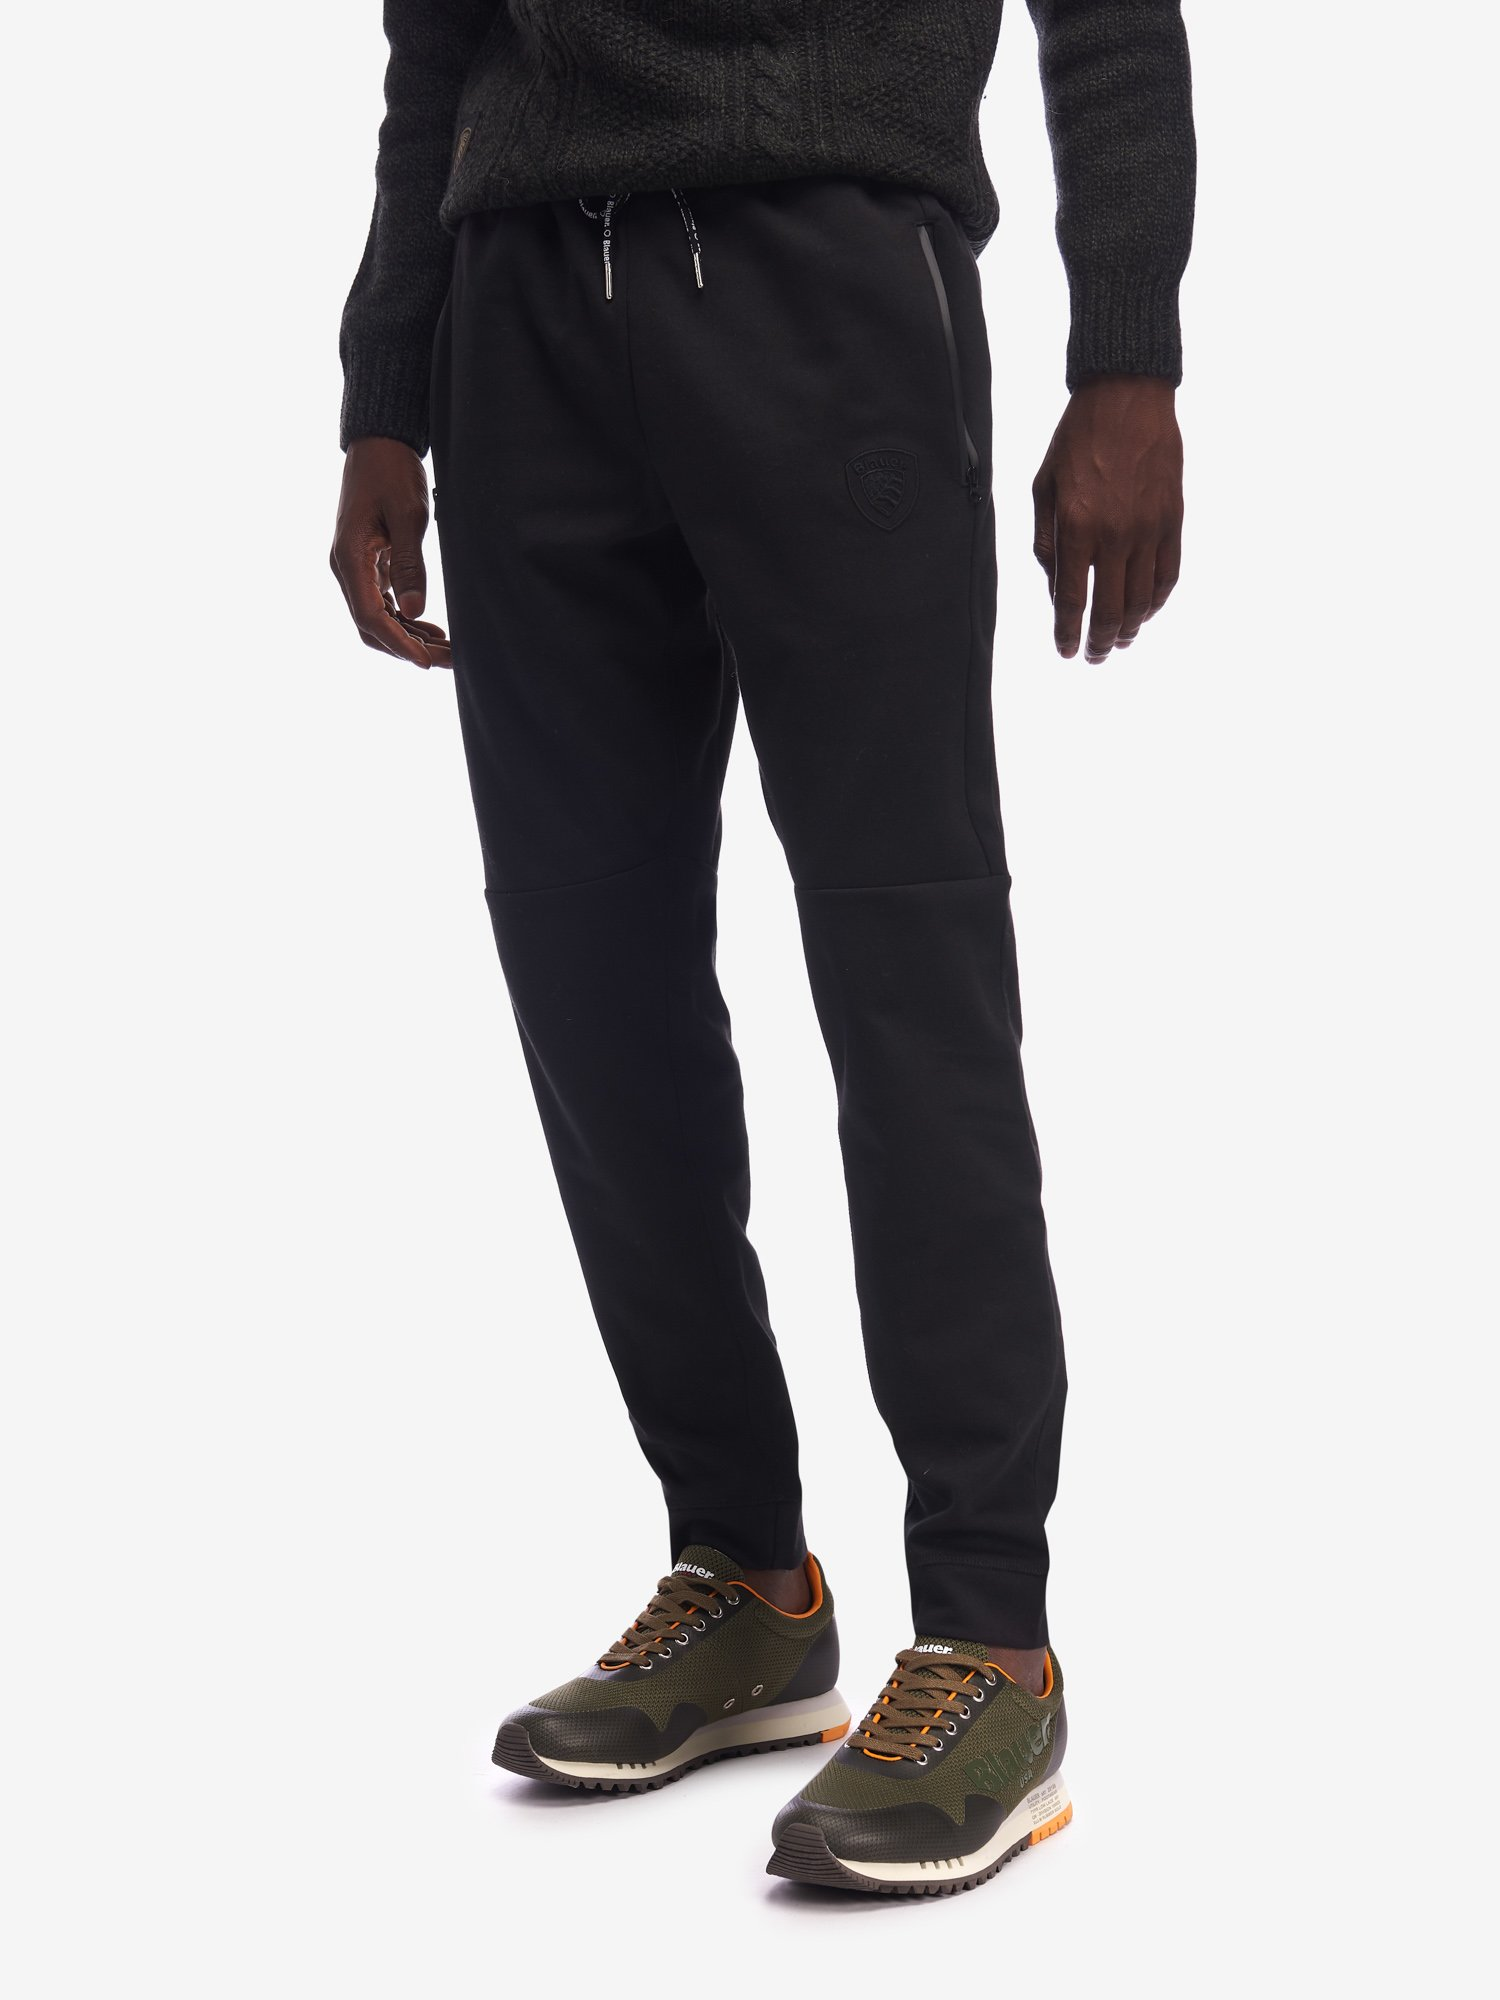 Blauer - COTTON-BLEND SWEATPANTS WITH ZIP POCKETS - Black - Blauer